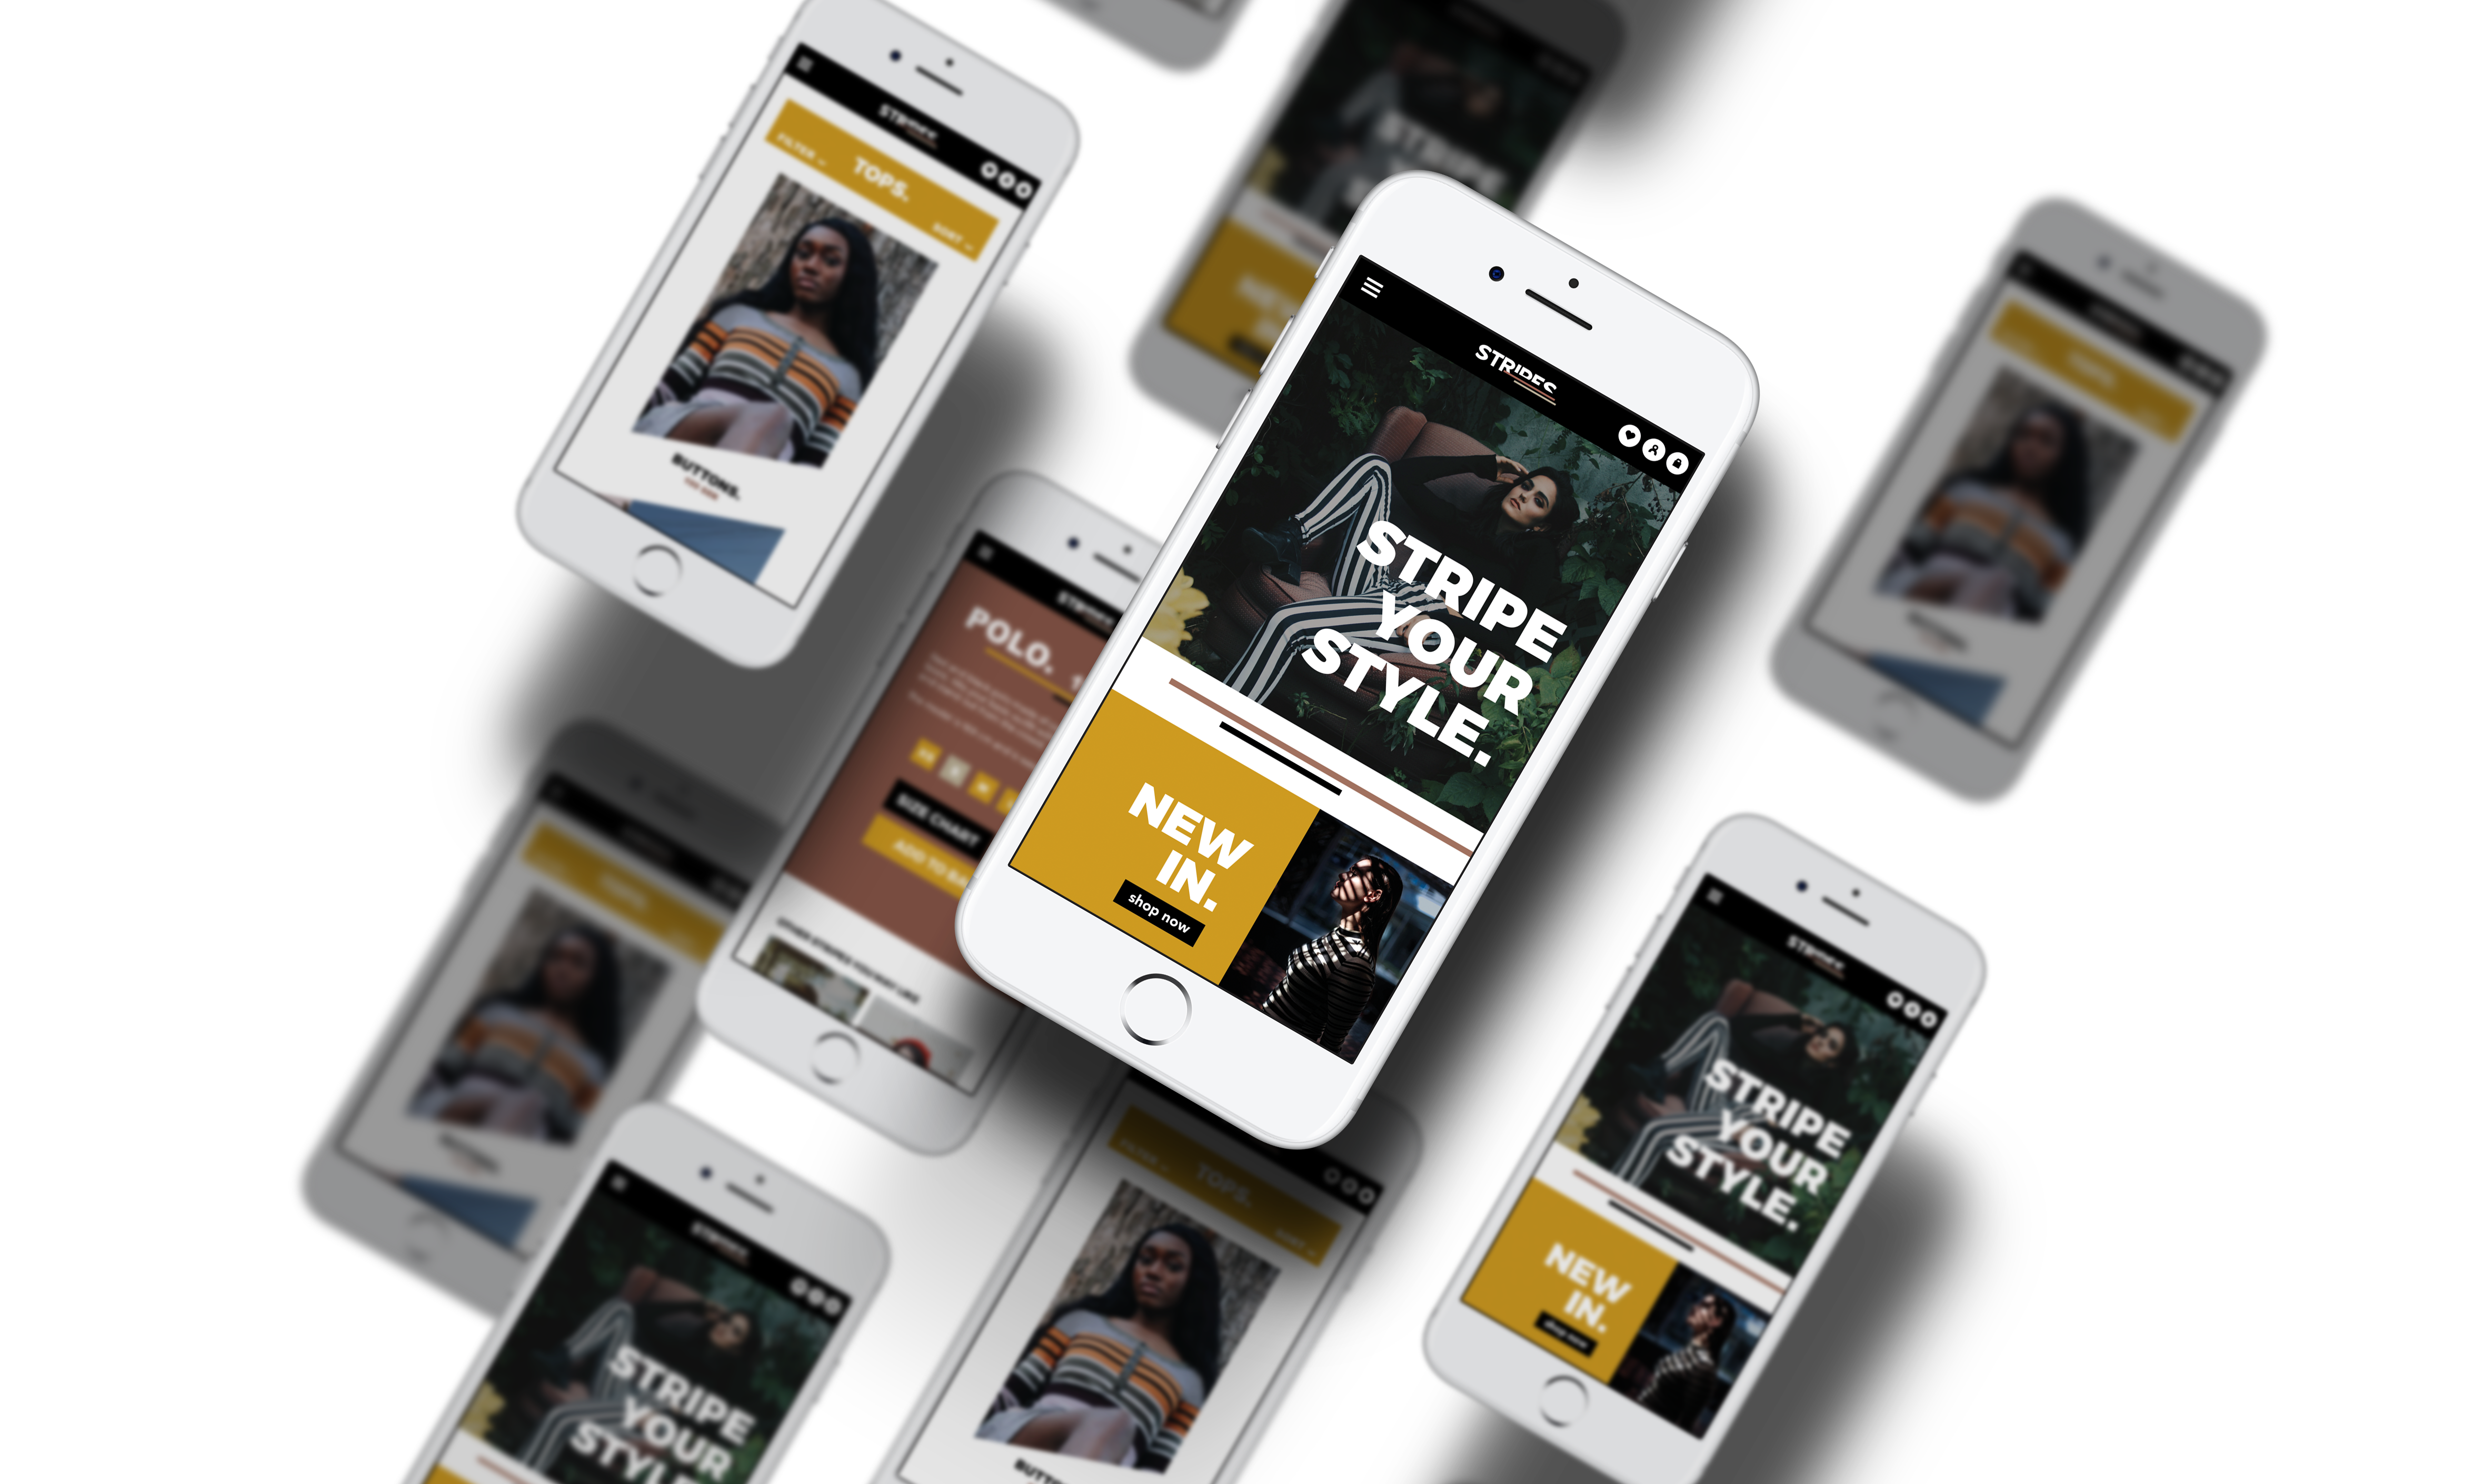 Mockup website for Stripe clothing company mobile/iPhone version